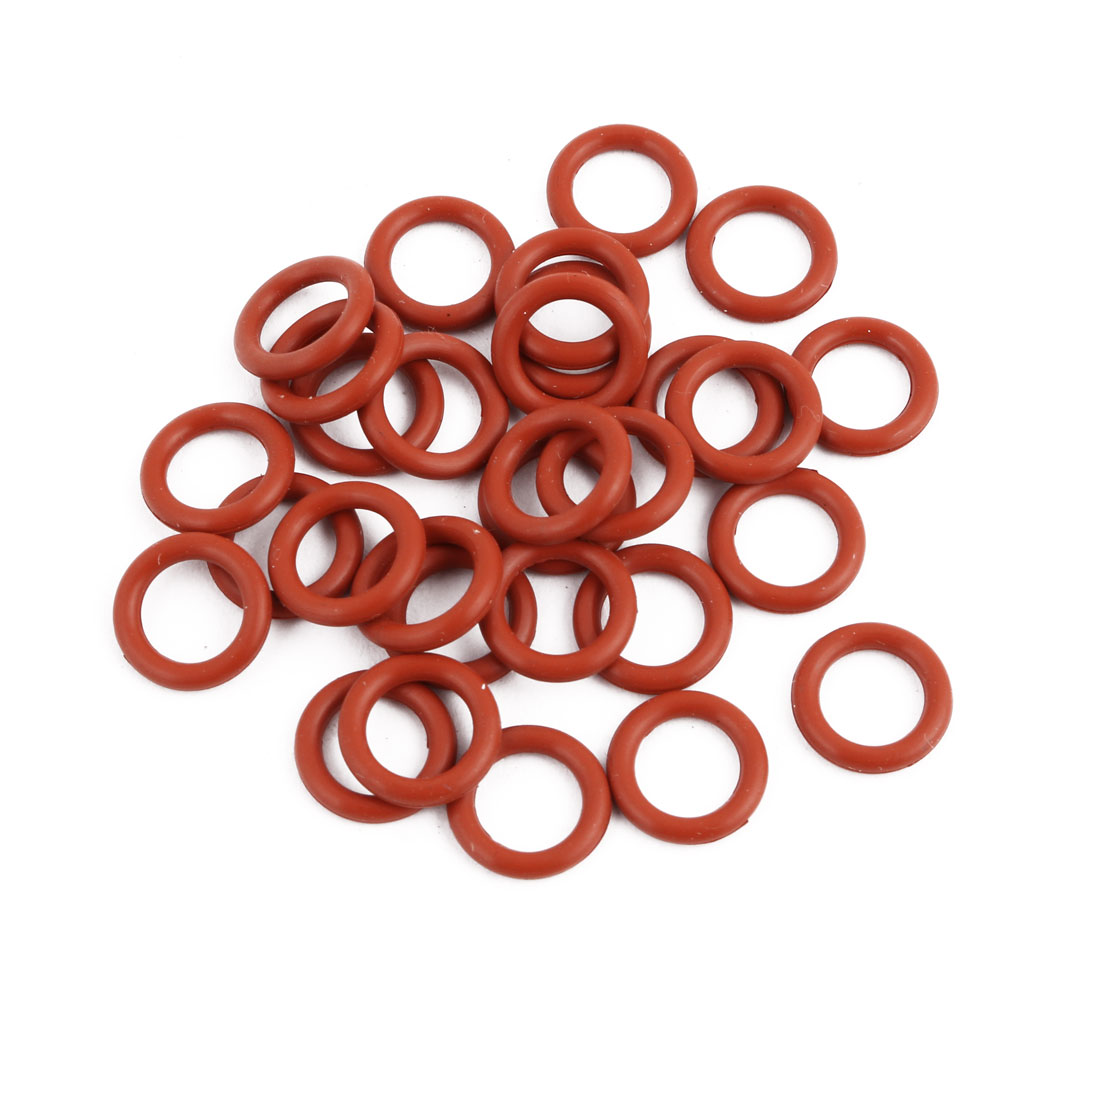 30pcs Red Round Nitrile Butadiene Rubber NBR O-Ring 11mm OD 1.9mm Width